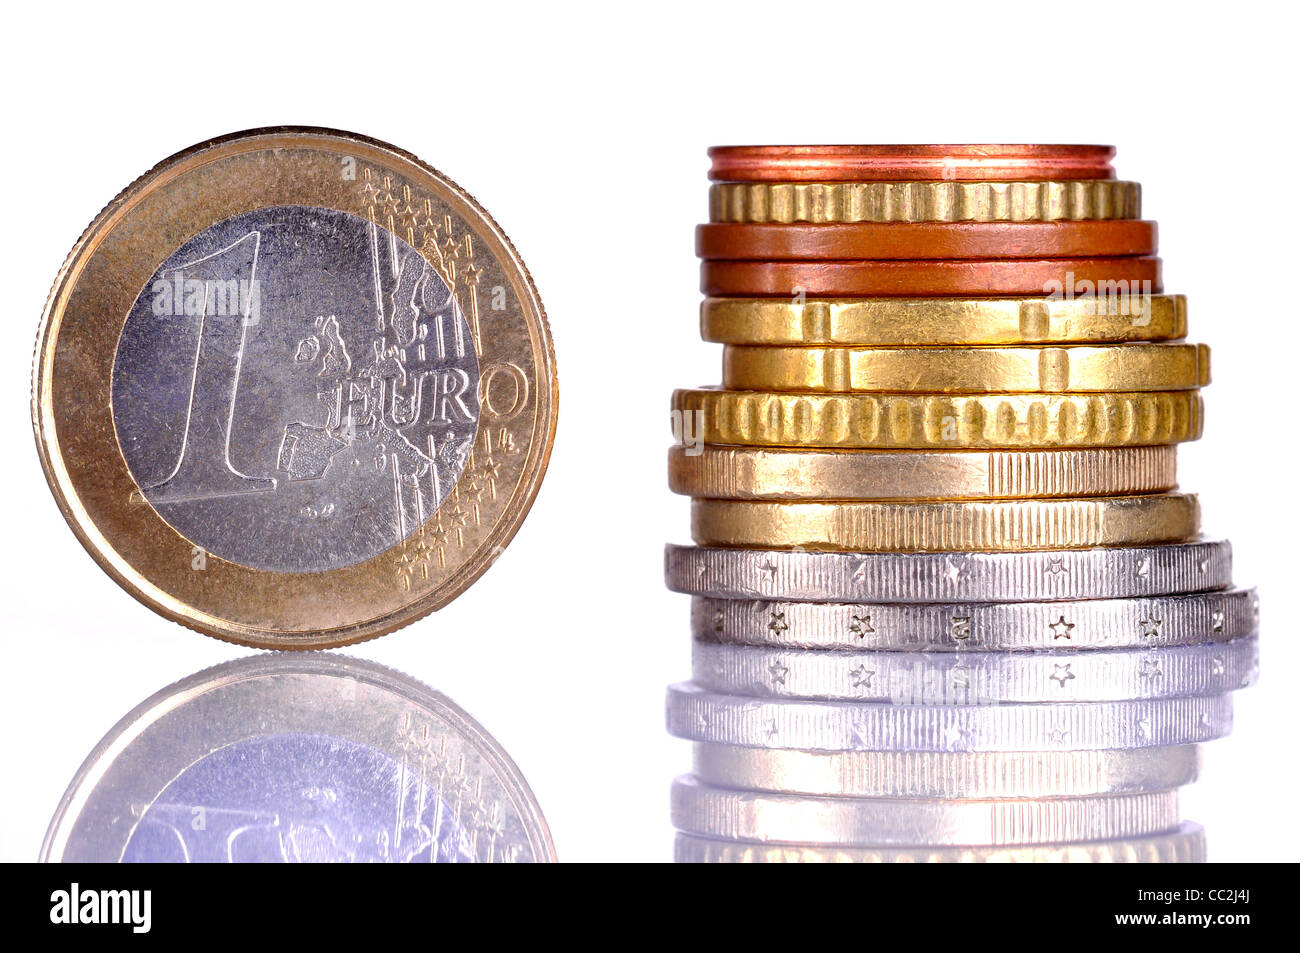 Close up of the one Euro coin, next to a pile of coins - Stock Image